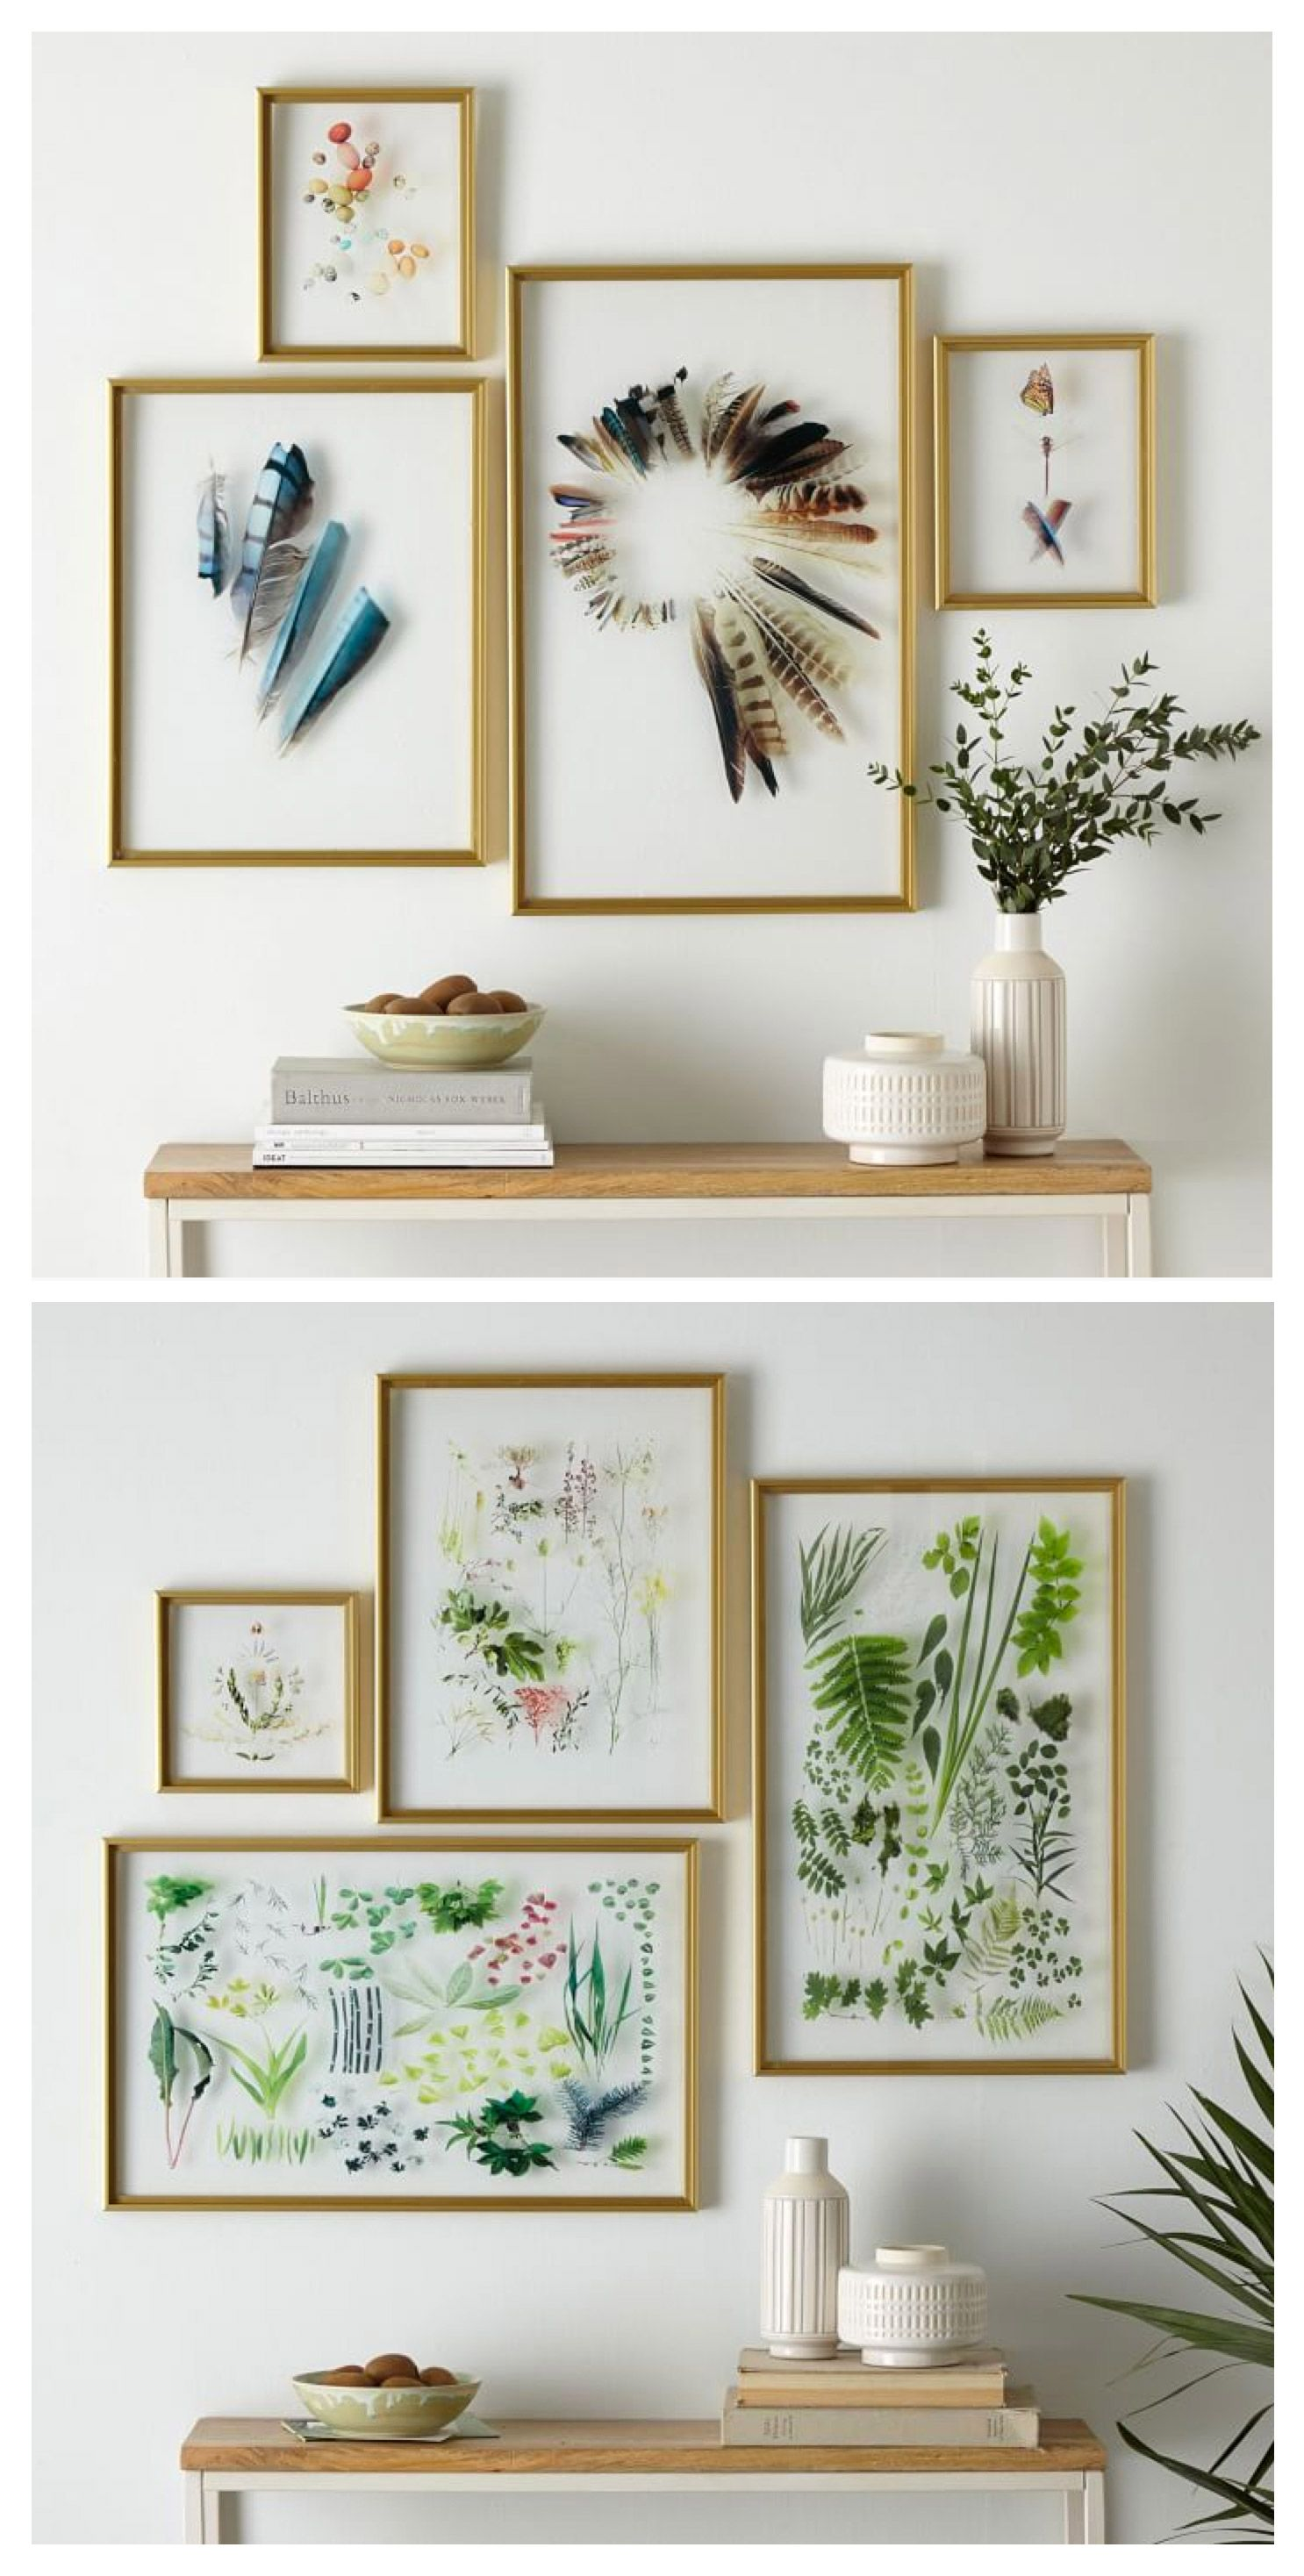 a699fd61d8f5fddf201c2fae204492d7 Nature Bedroom Wall Decorating Ideas on nature modern bedrooms, nature decor, natural bedroom design ideas, nature bedroom colors, blue bedroom ideas, nature themed bedroom, neutral bedroom ideas, cheap teenage girls bedroom ideas, master bedroom ideas, bedroom paint color ideas, nature room ideas, nature kitchen, industrial furniture ideas, nature nursery ideas, nature bedroom themes, nature bedroom design, nature bathroom ideas,